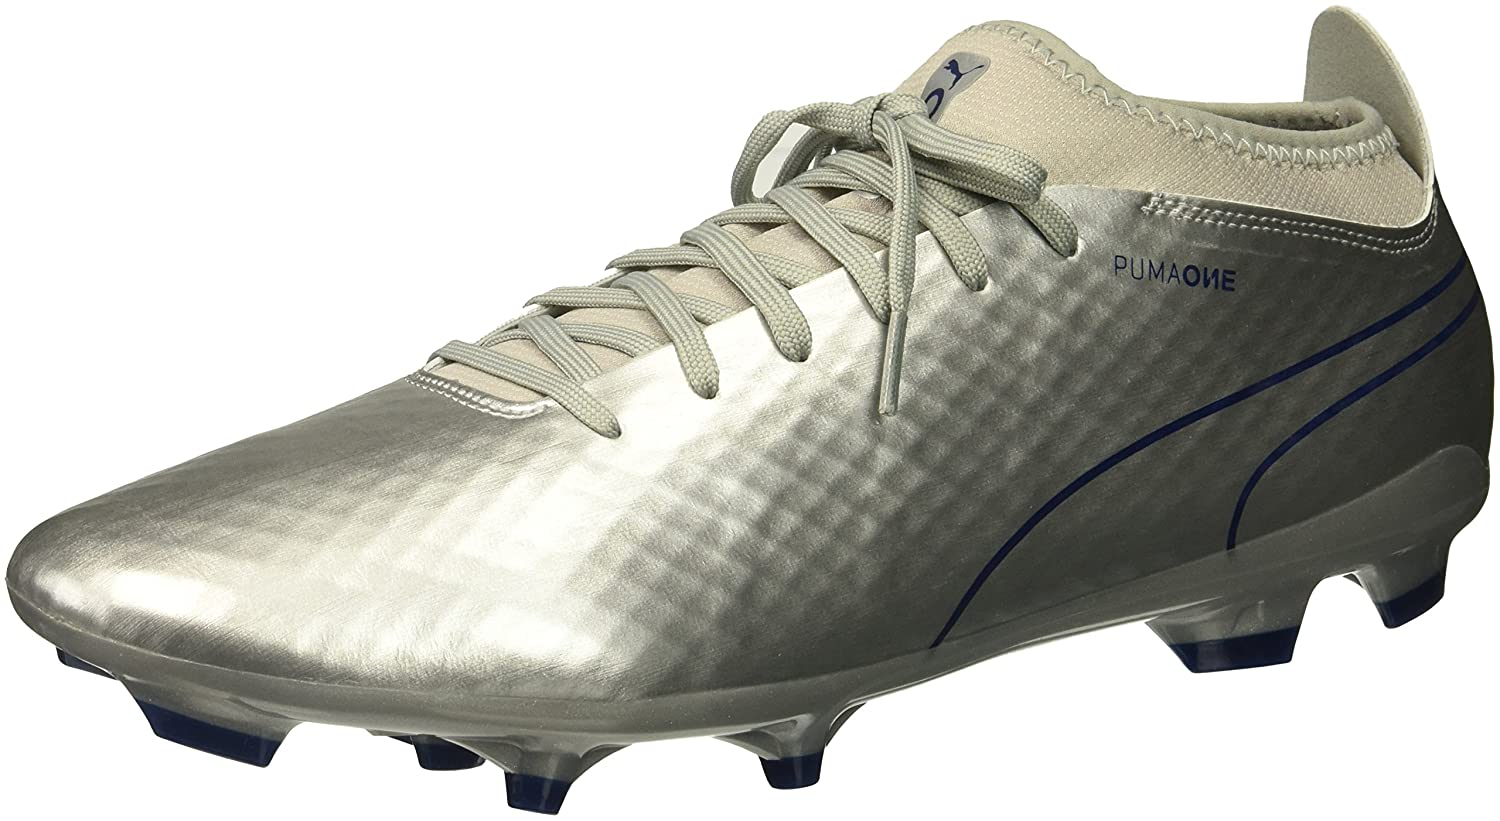 PUMA Men's One Chrome 2 FG Soccer Schuhe, Silver Blau Depths, 9 M US